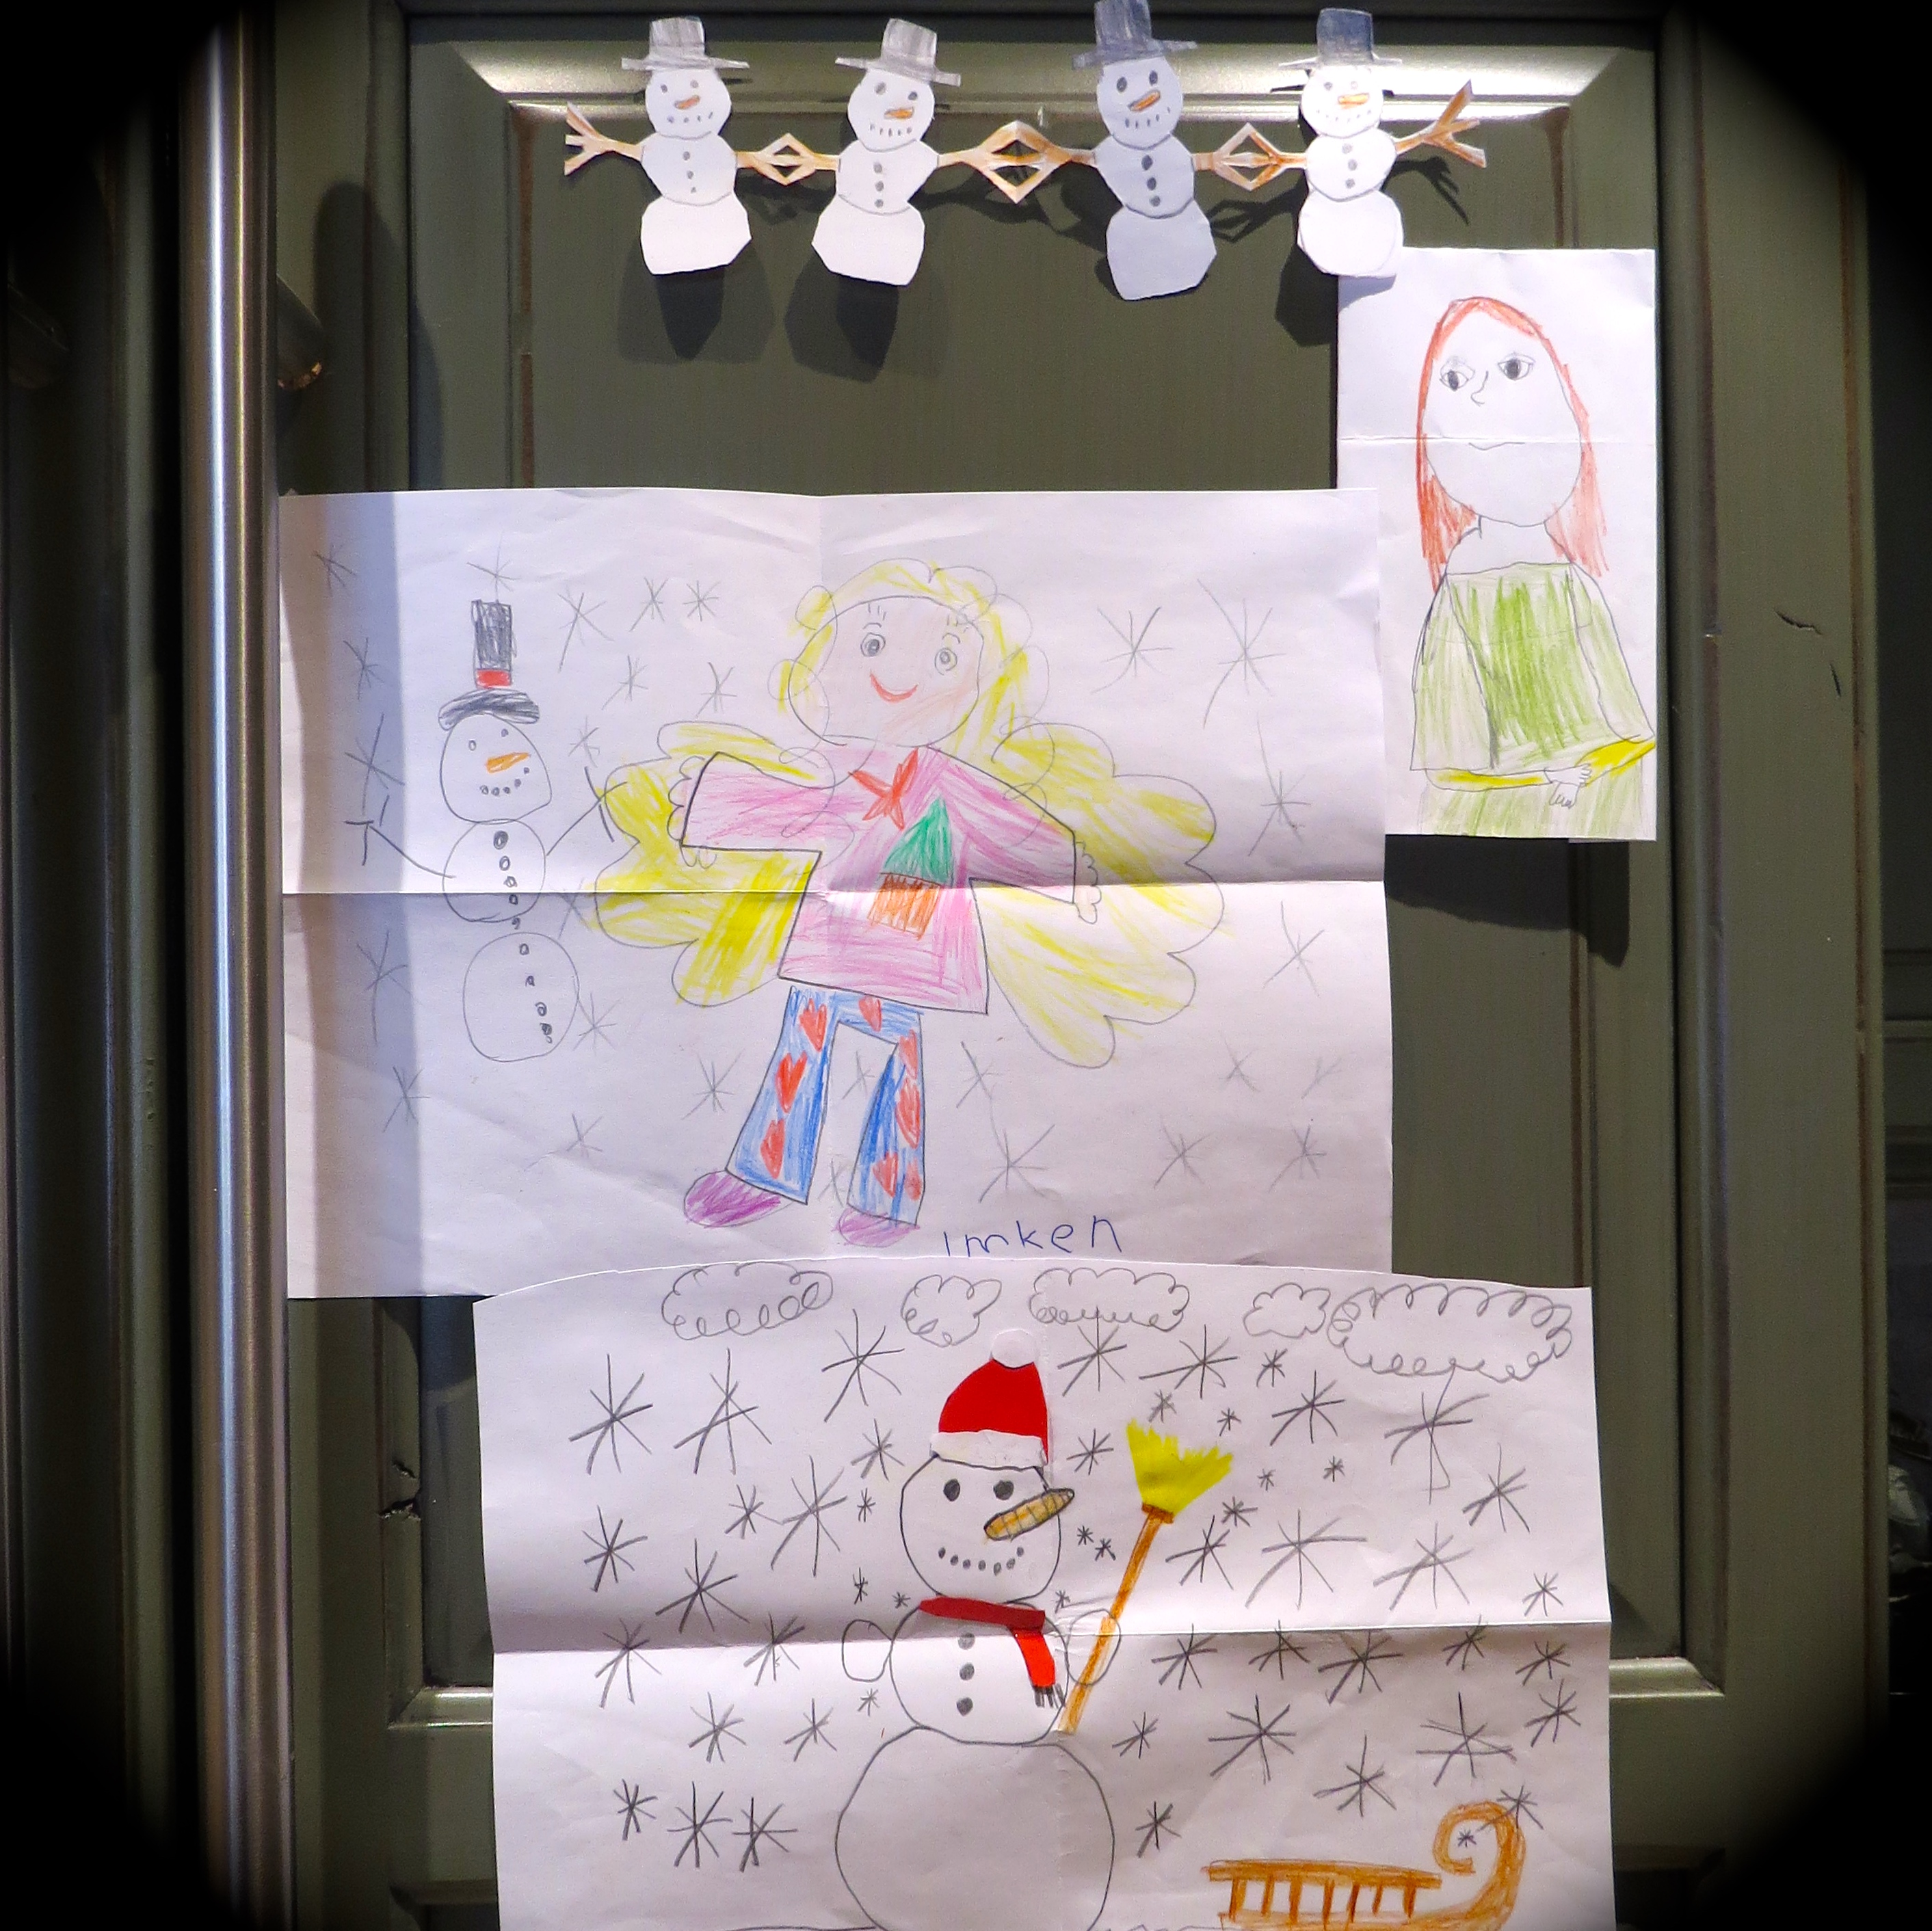 I Appreciate that for the past three years Klara, Gretchen, Freya and Imken, who live in Germany, have asked their Mother who blogs at The Kitchen Lioness, to send me their Christmas artwork. If one can have a Virtual Family, they are mine.